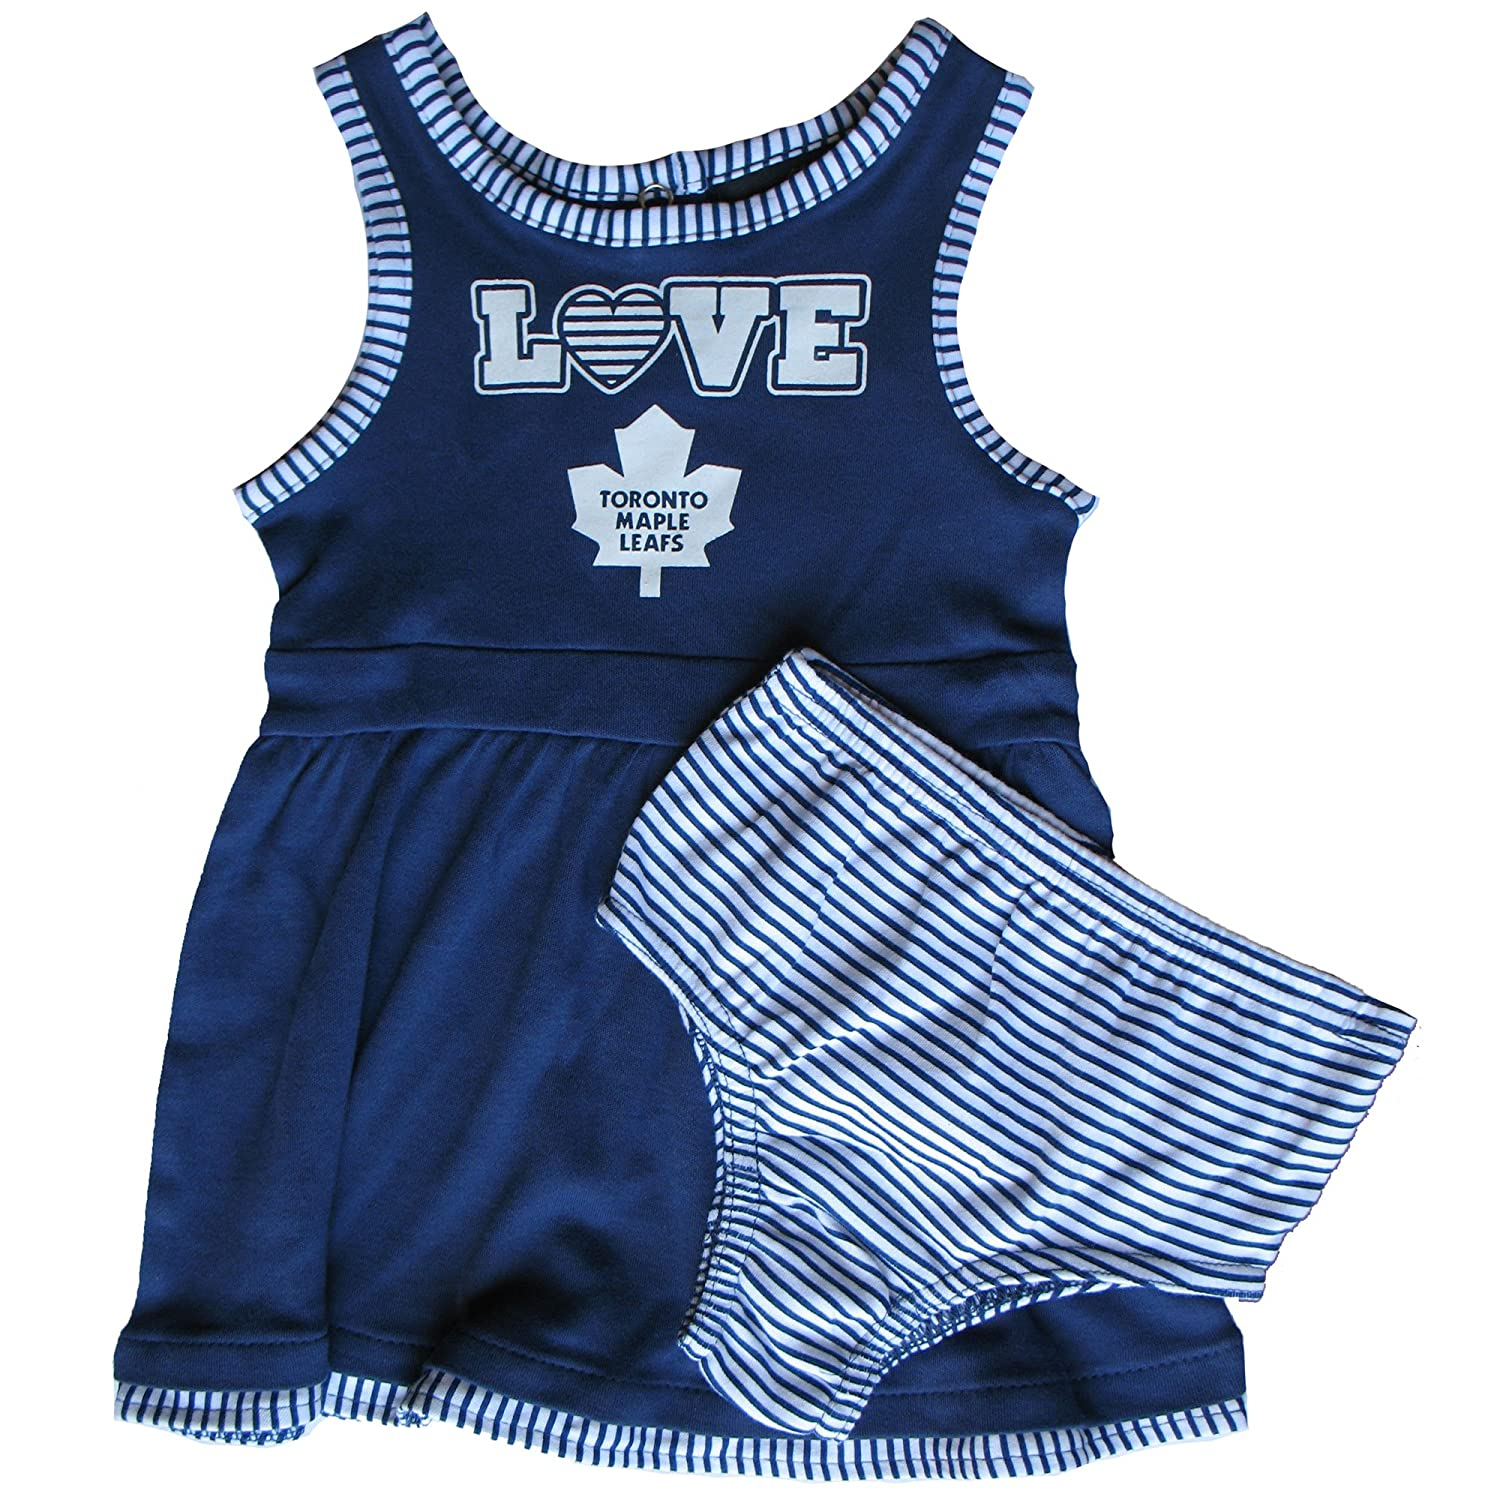 Toronto Maple Leafs Toddler Girls Dress and Bloomers Set - Size 4T Outerstuff